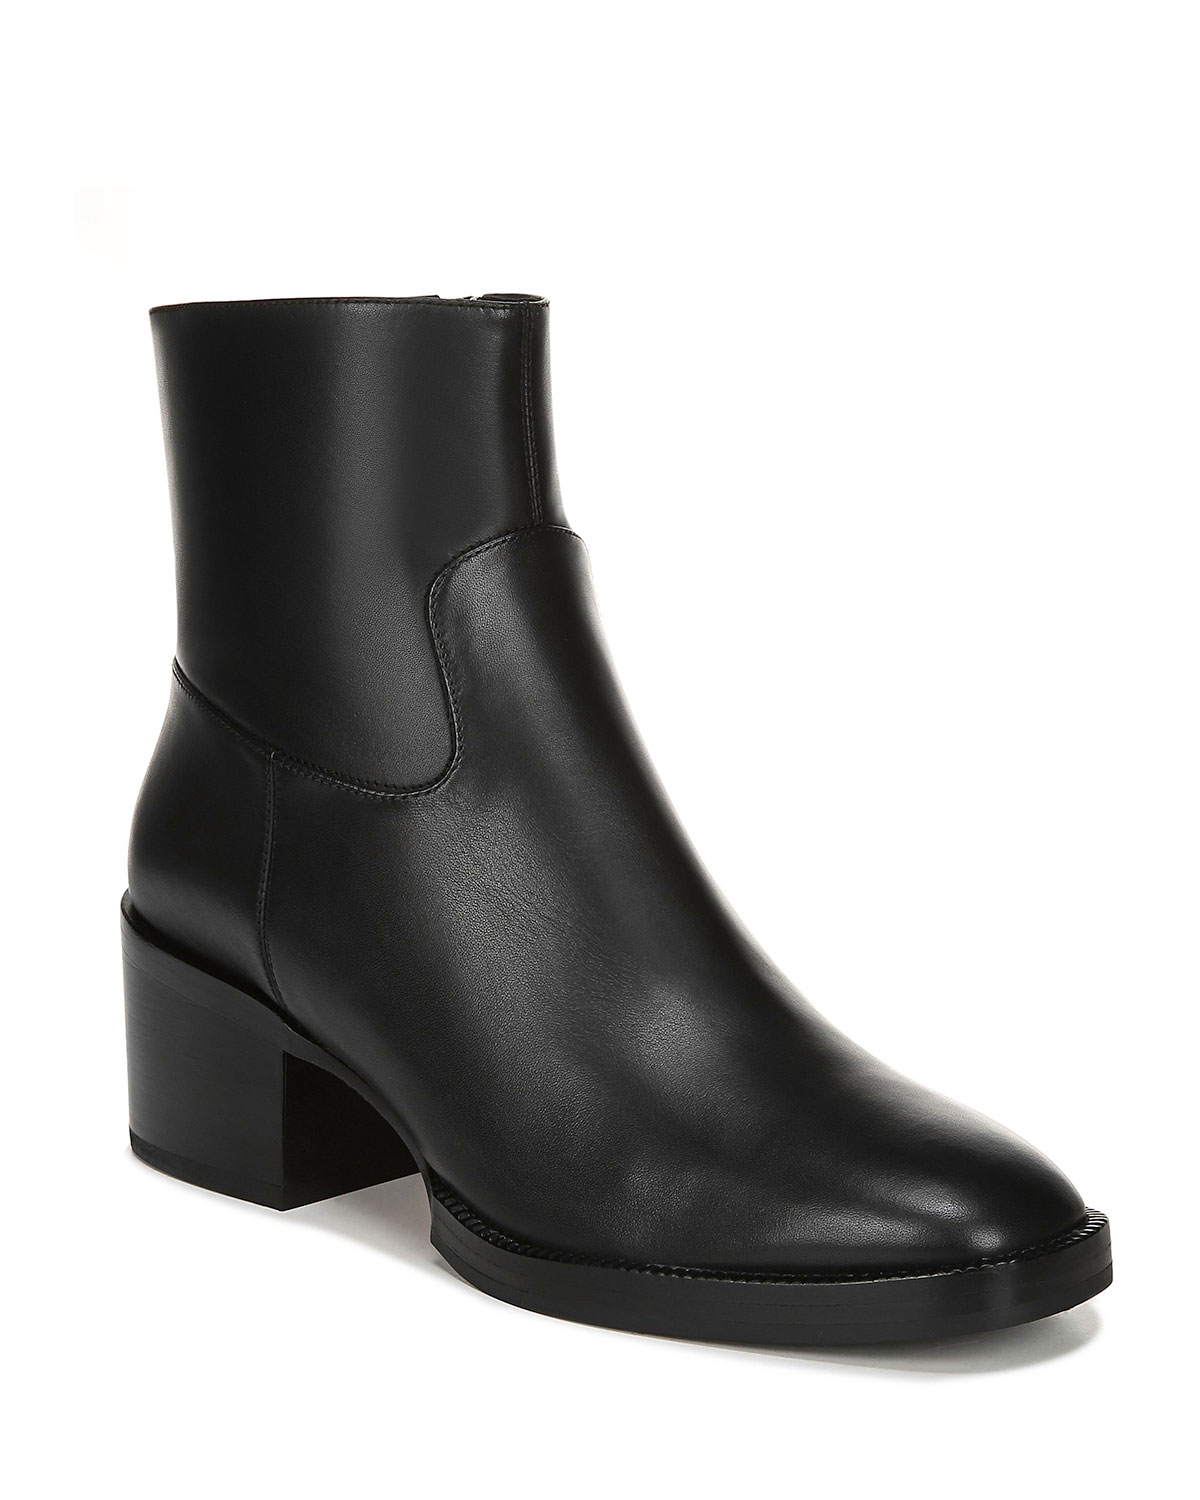 Via Spiga Boots GINEVRA CALF ZIP BOOTIES